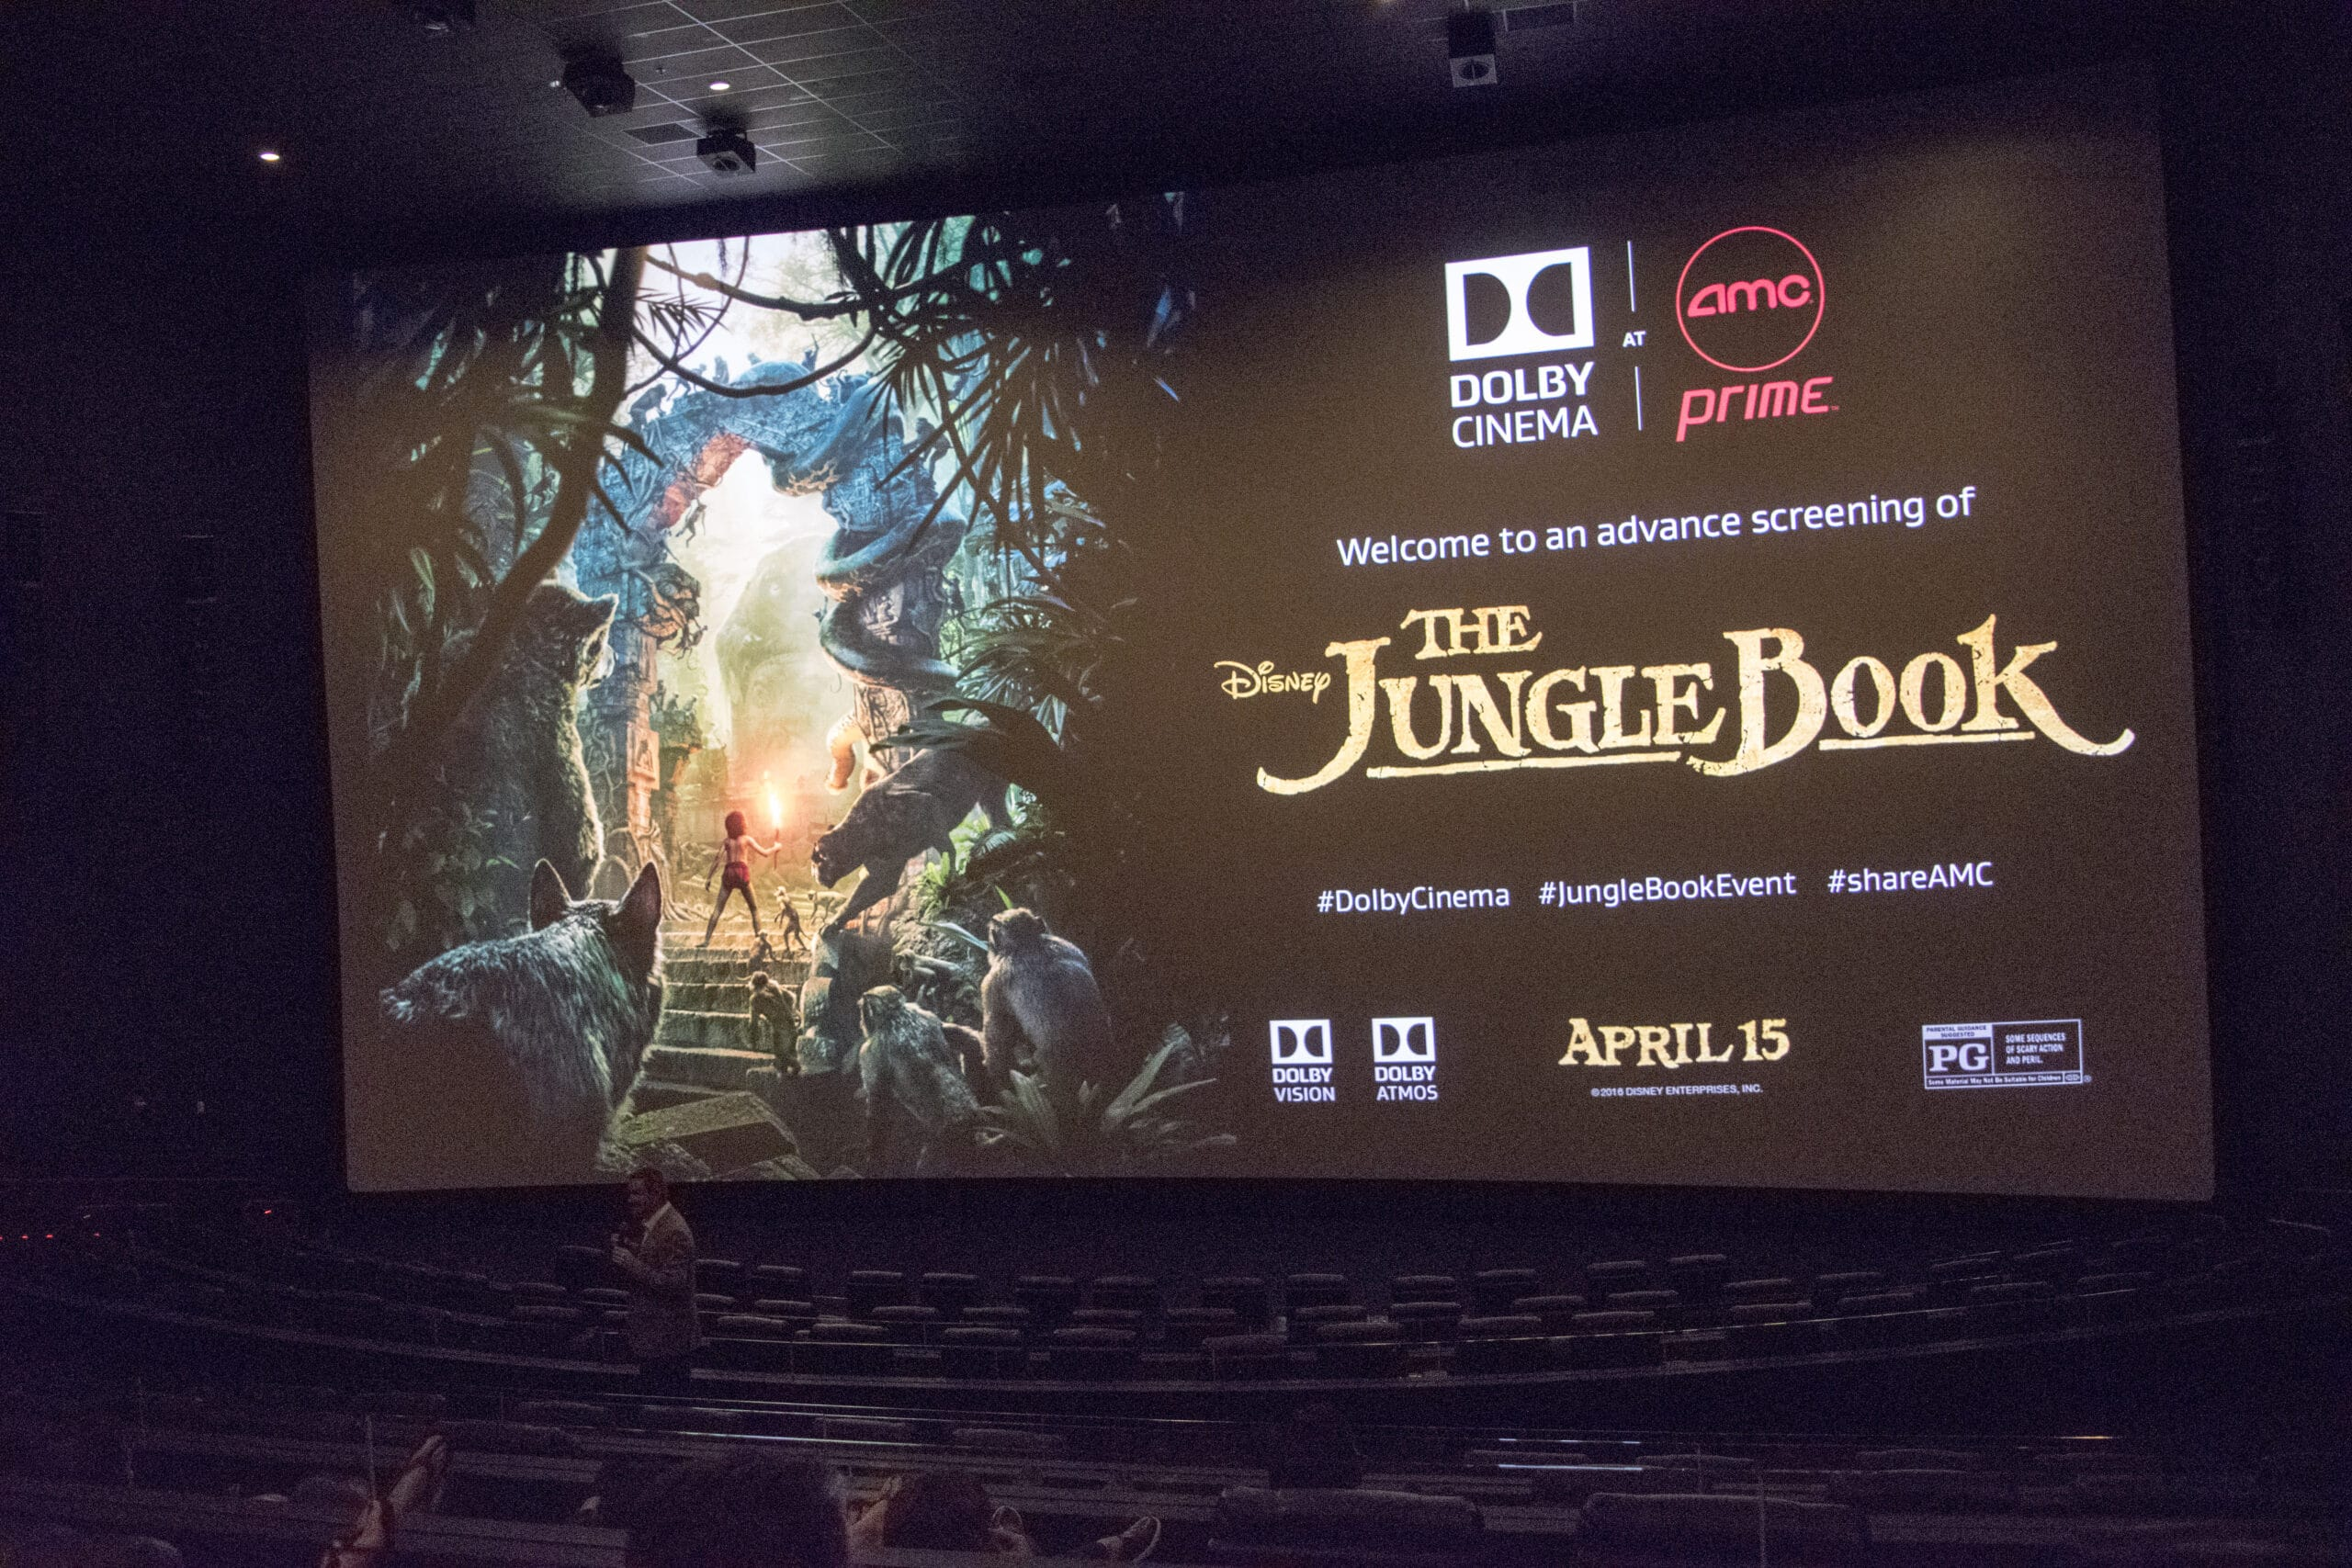 My Dolby Cinema at AMC Prime Experience – #JungleBookEvent #DolbyCinema #ShareAMC